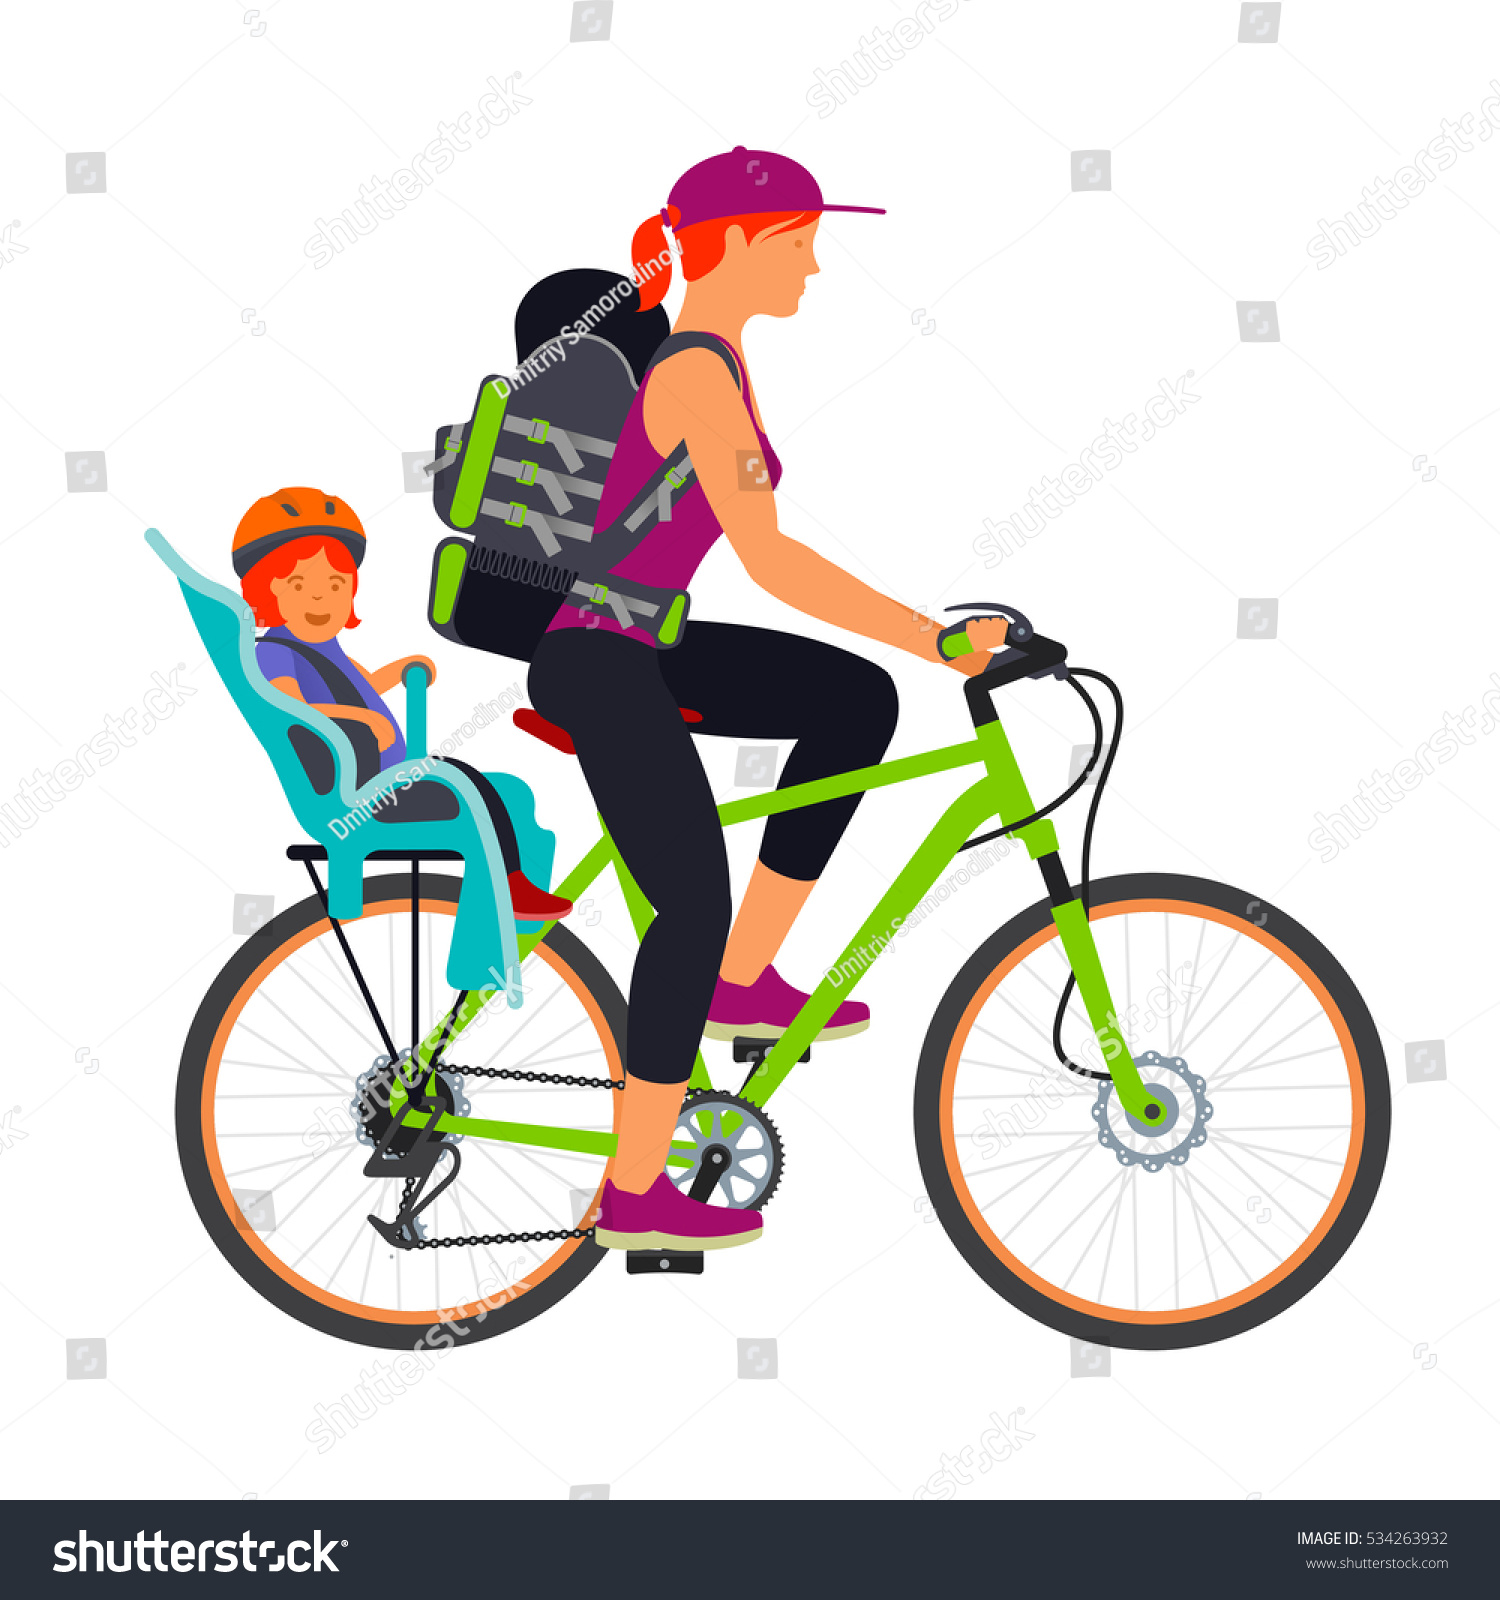 Chair Bike Woman Child Chair Traveling By Bike Stock Illustration 534263932